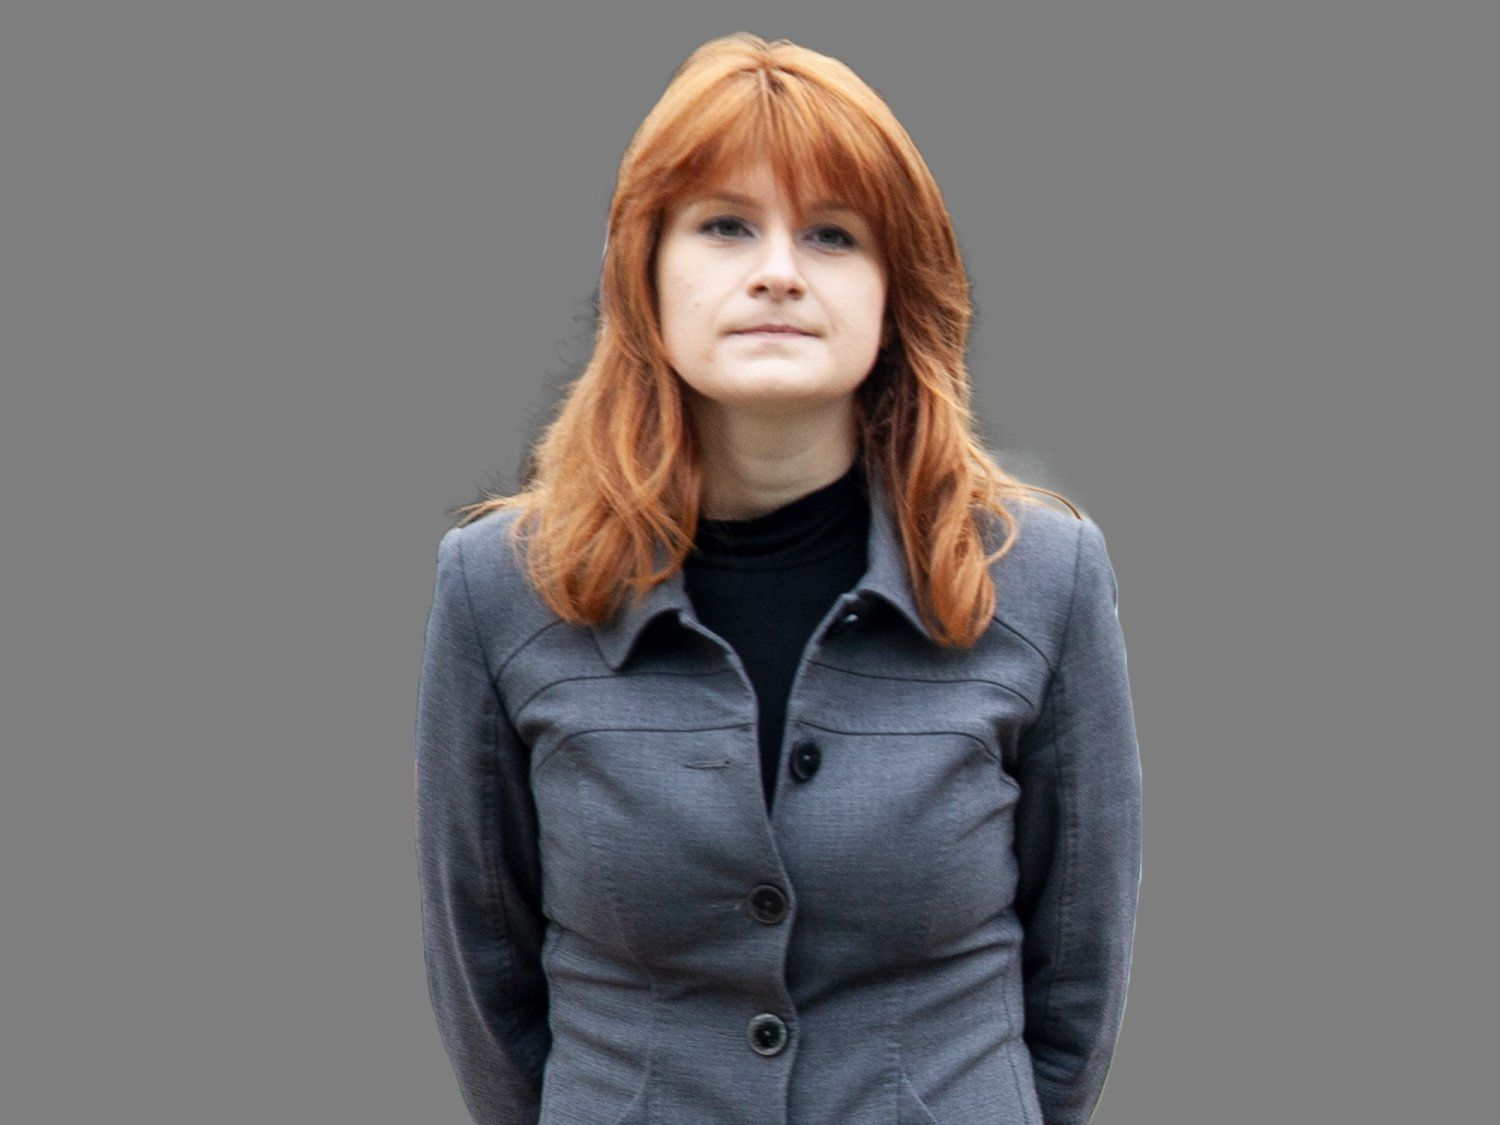 Accused Russian Agent Maria Butina Reaches Plea Deal With Federal Prosecutors: